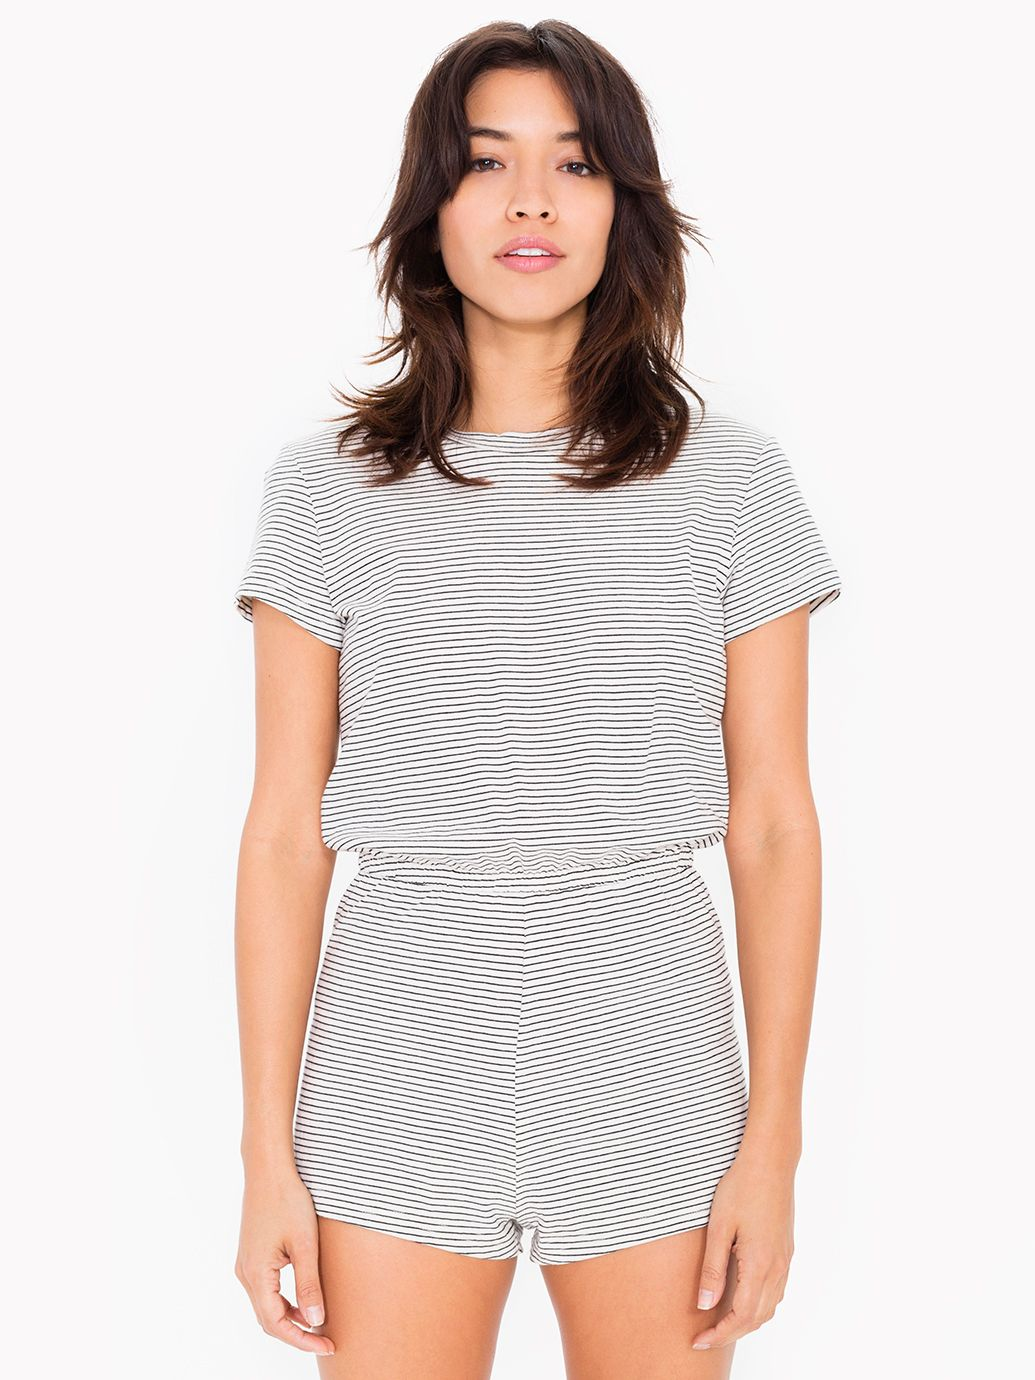 American Apparel Striped Jersey T-Shirt Romper